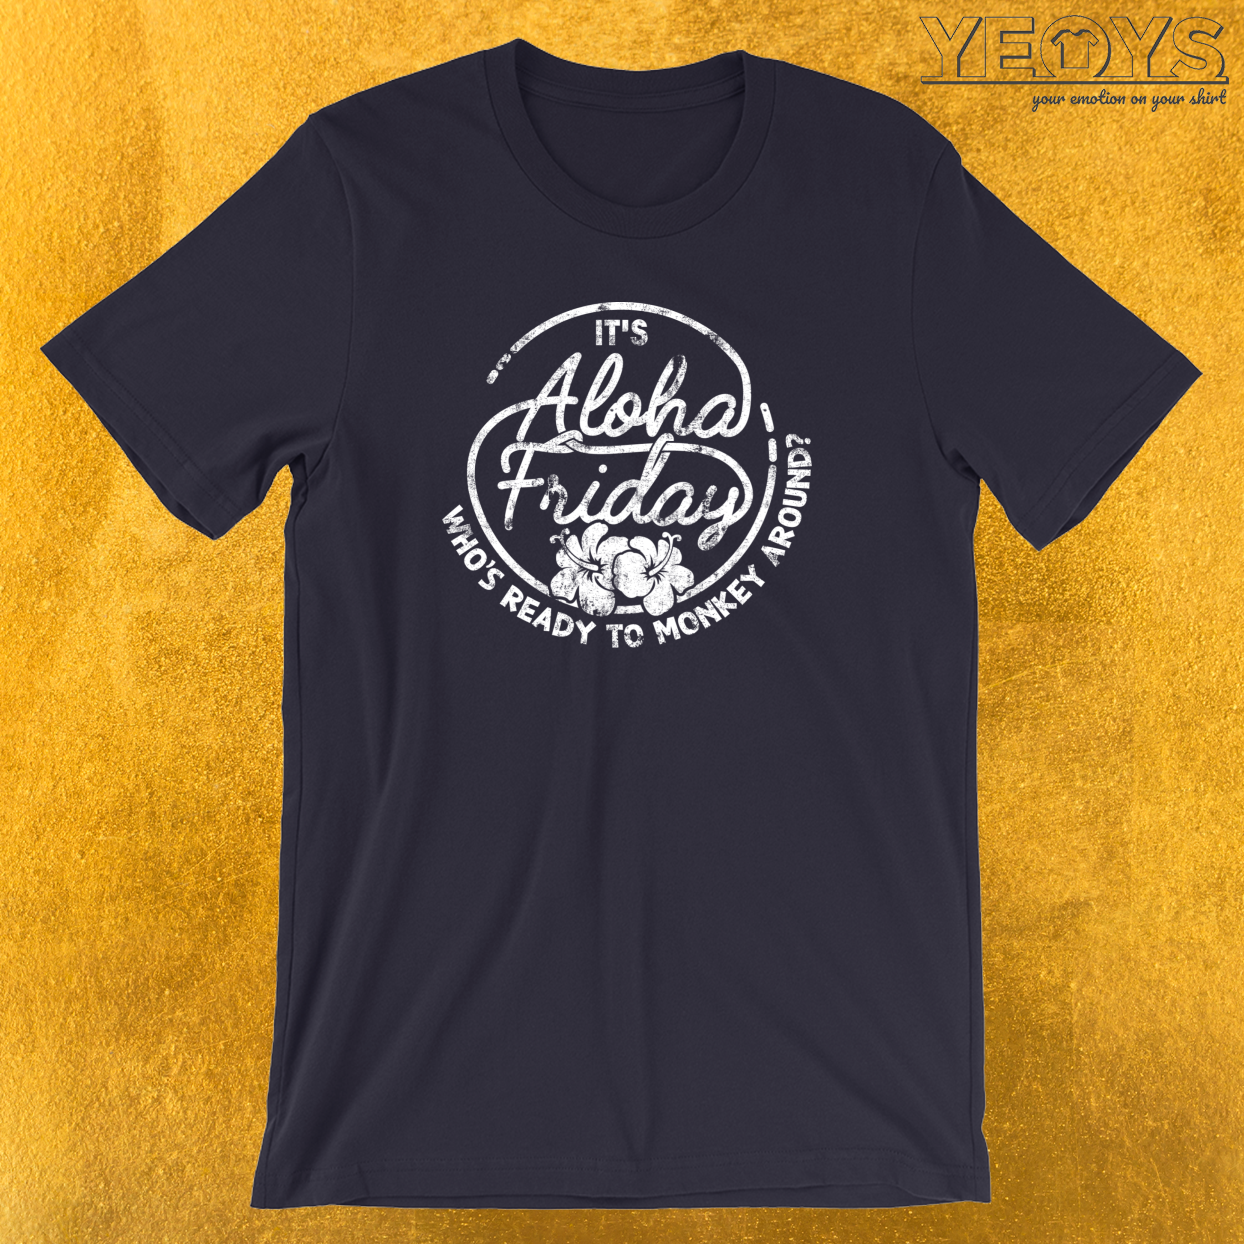 It's Aloha Friday Who's Ready To Monkey Around T-Shirt